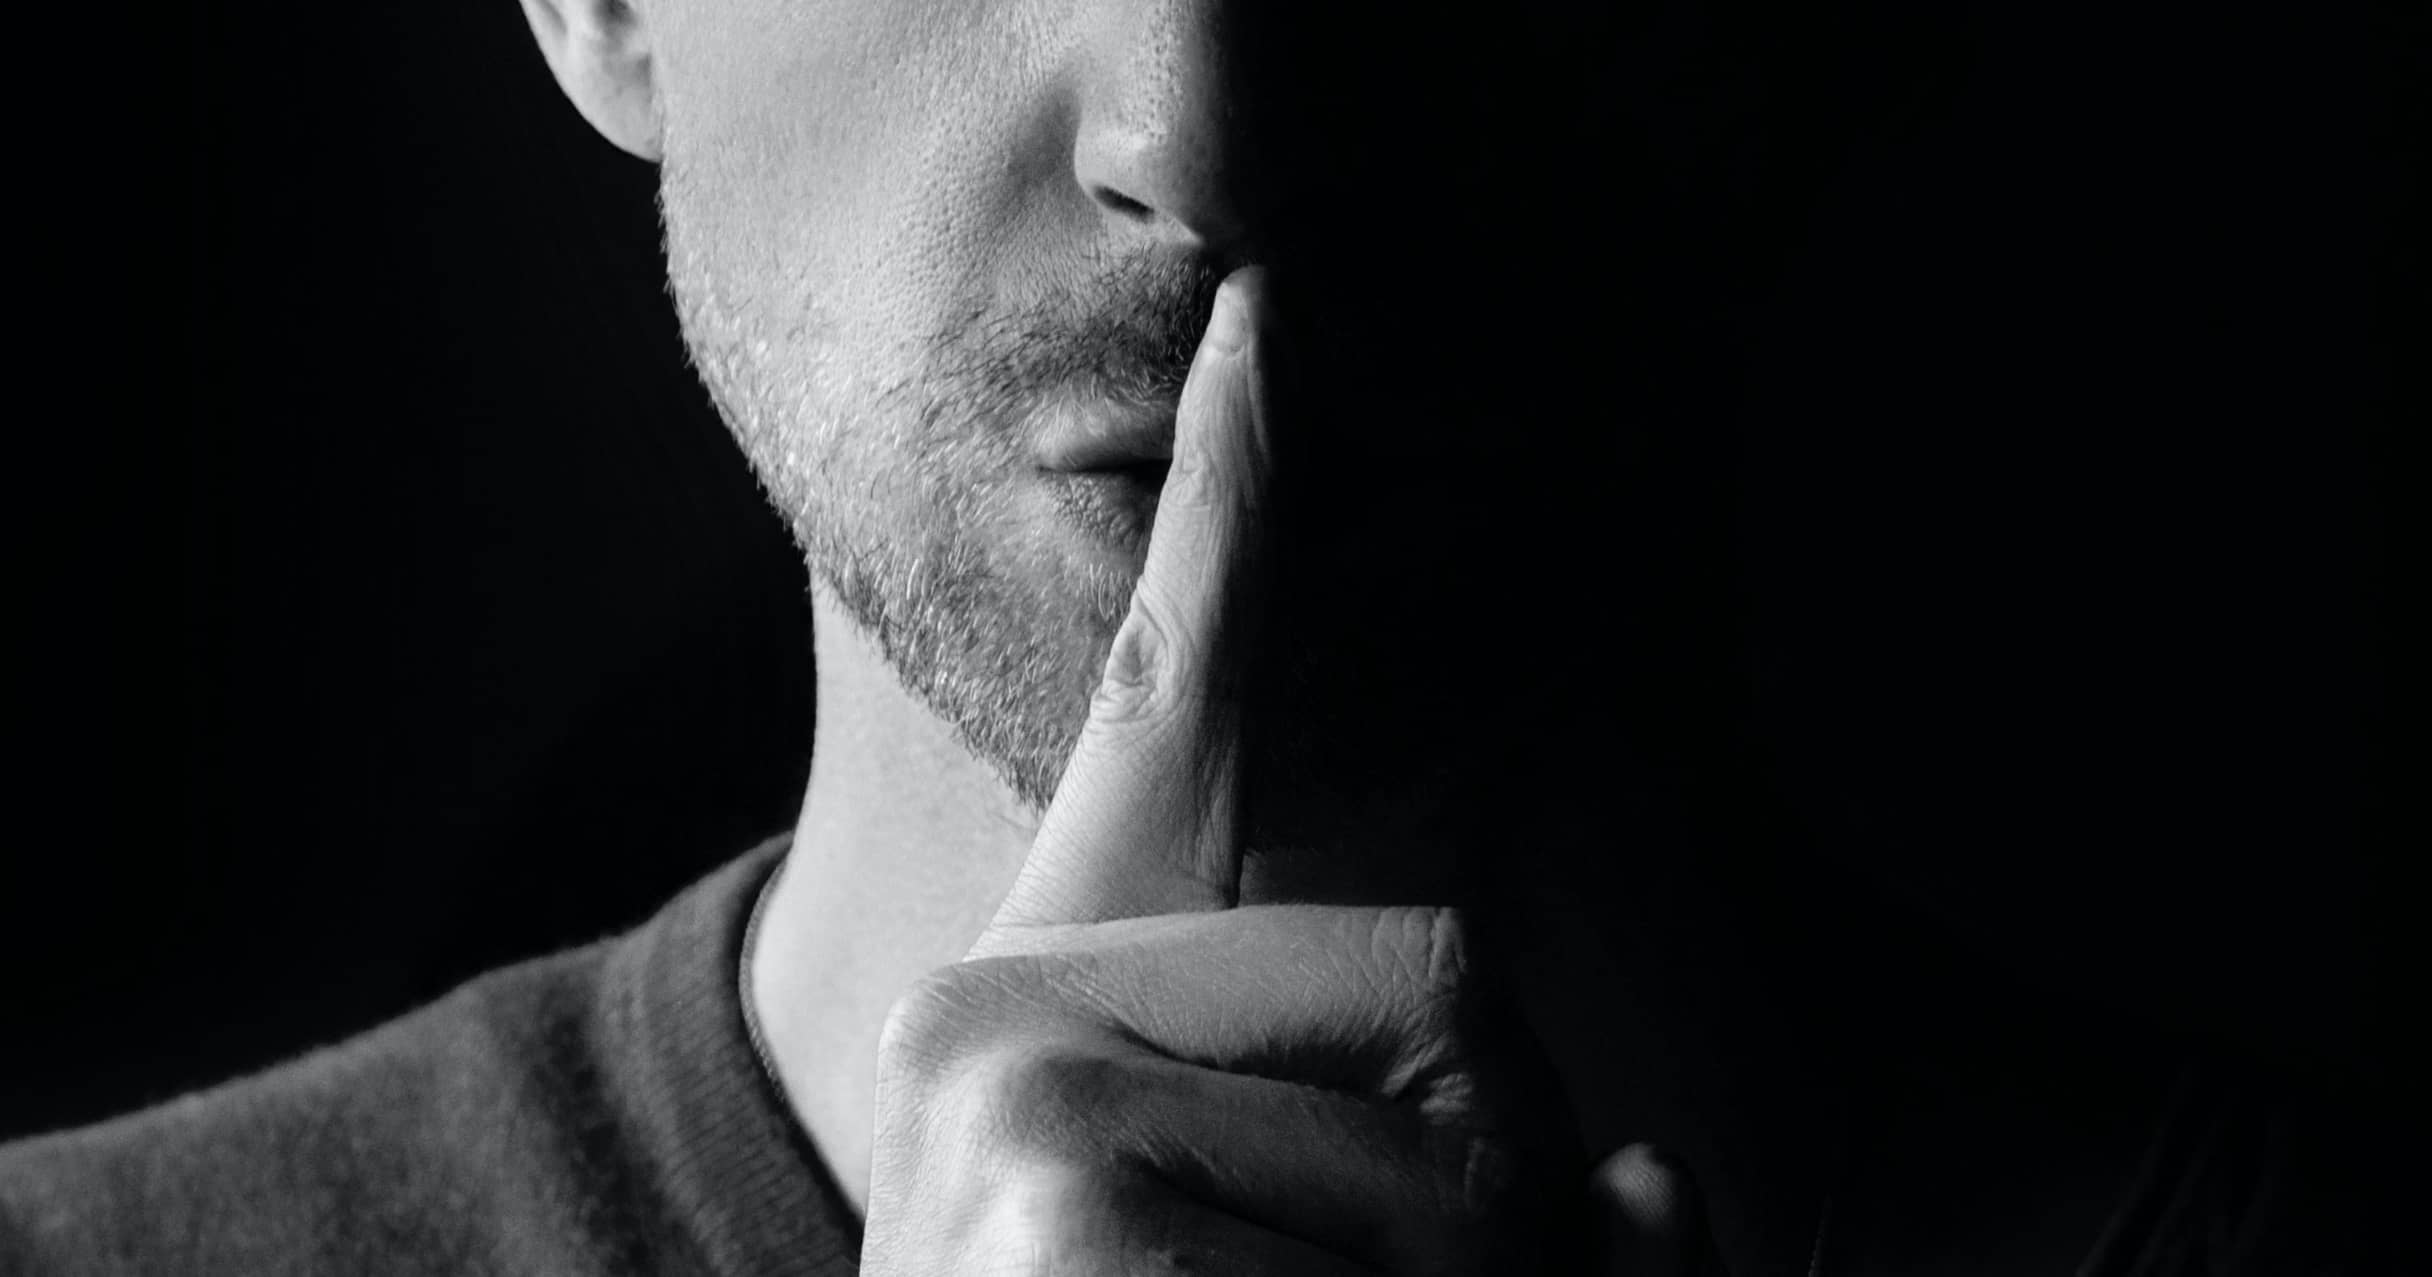 Man-finger-over-mouth-quiet-silence